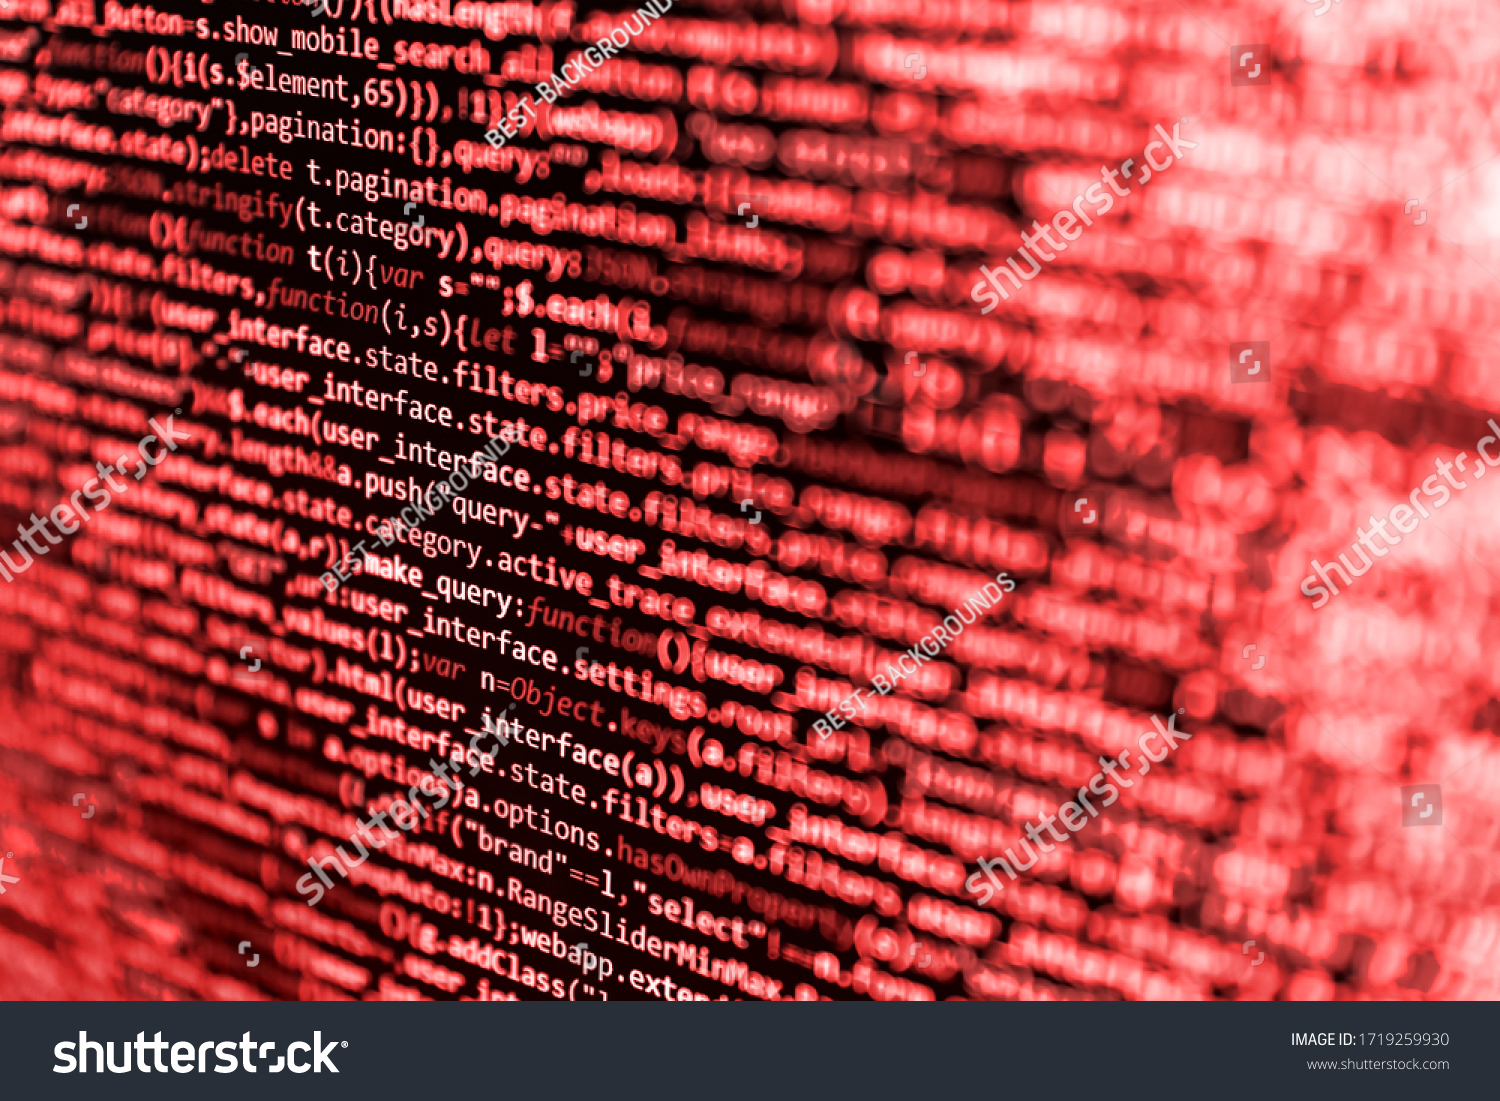 stock-photo-it-coding-on-monitor-screen-abstract-technology-background-website-development-screen-of-code-1719259930